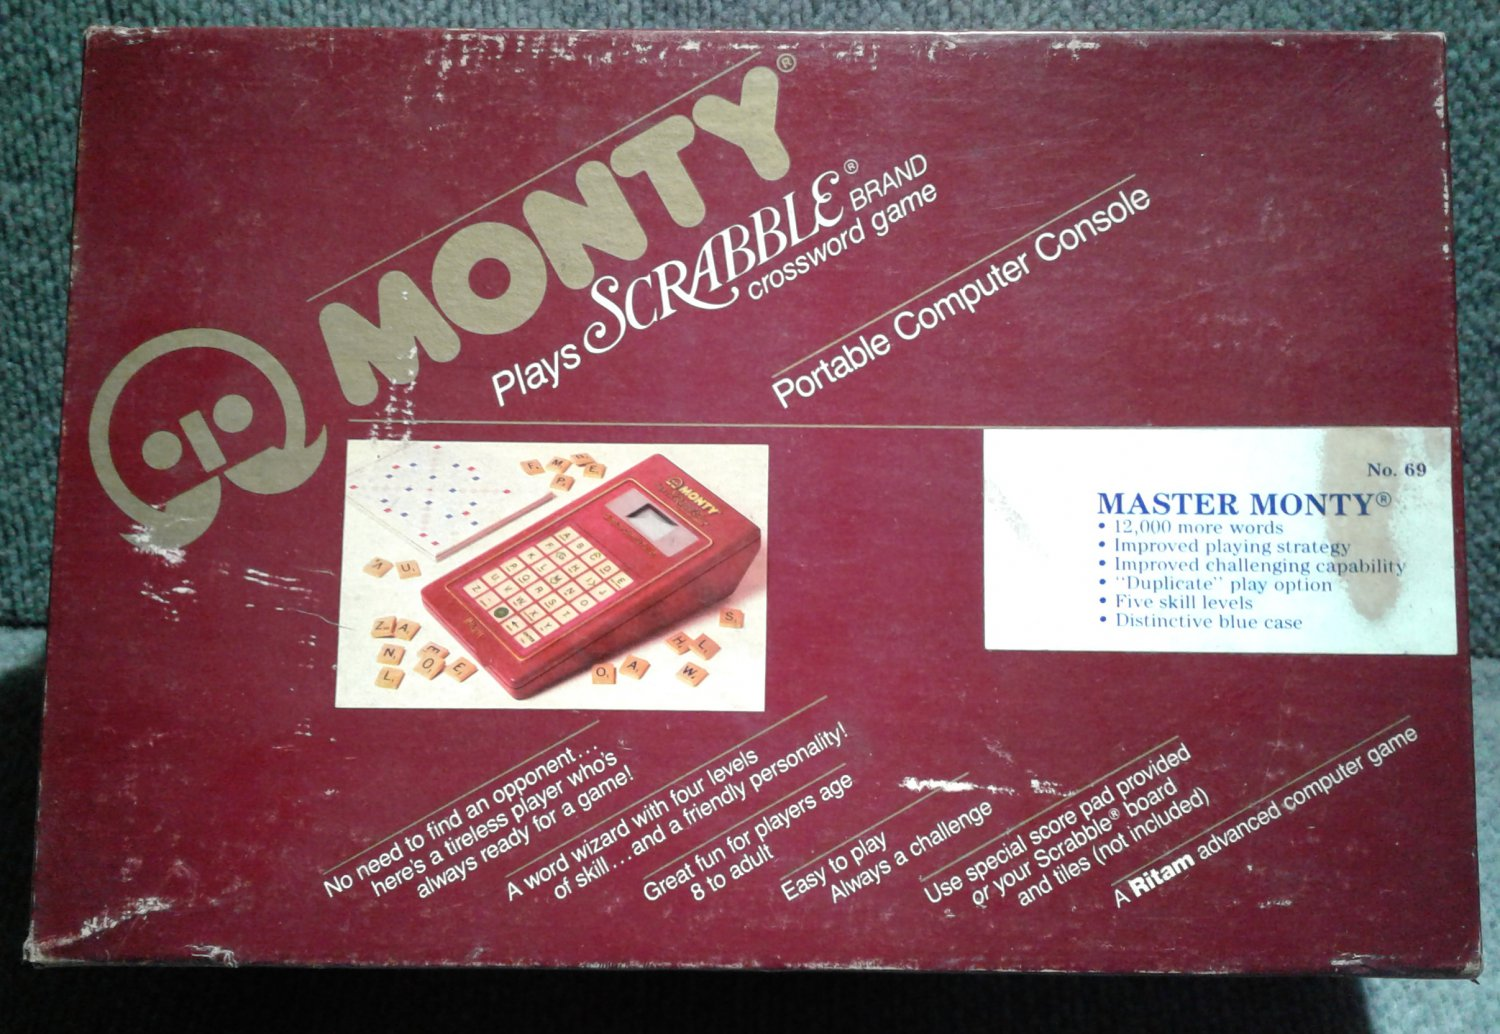 MASTER MONTY - ELECTRONIC SCRABBLE GAME 1986 - ONE EXTRA VOCABULARY MODULE (IN BOX)